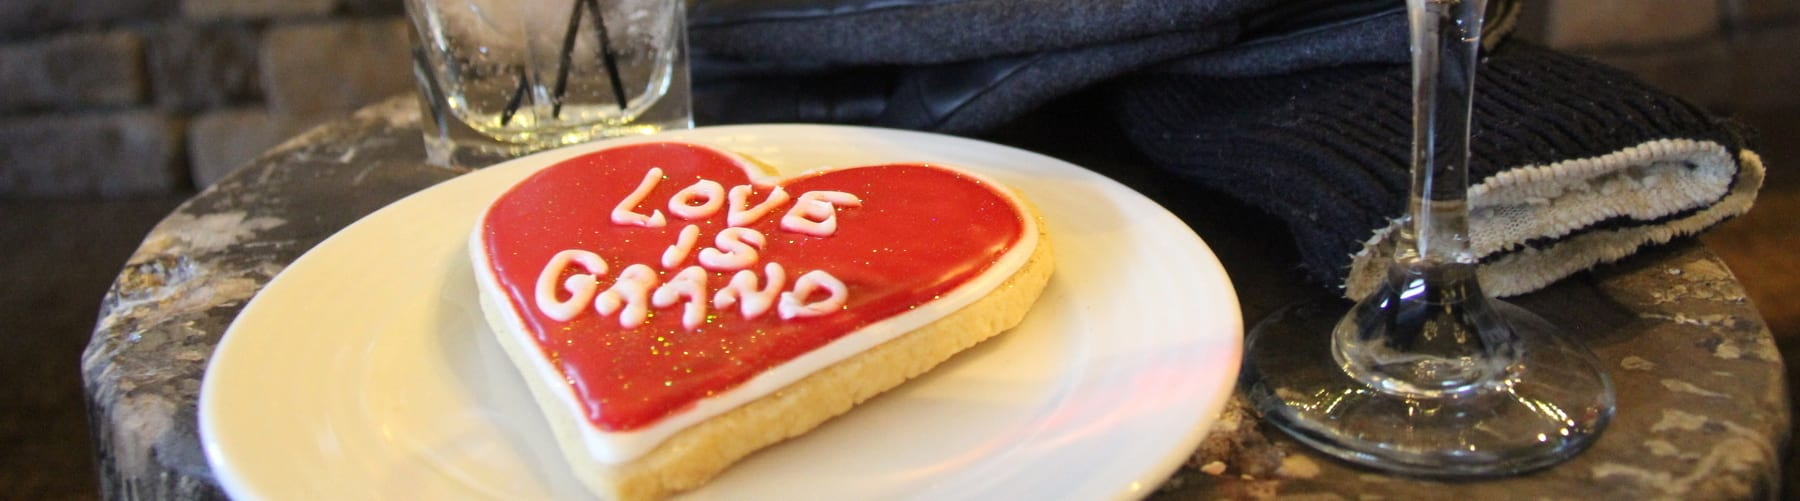 Love is Grand Cookie and Drinks